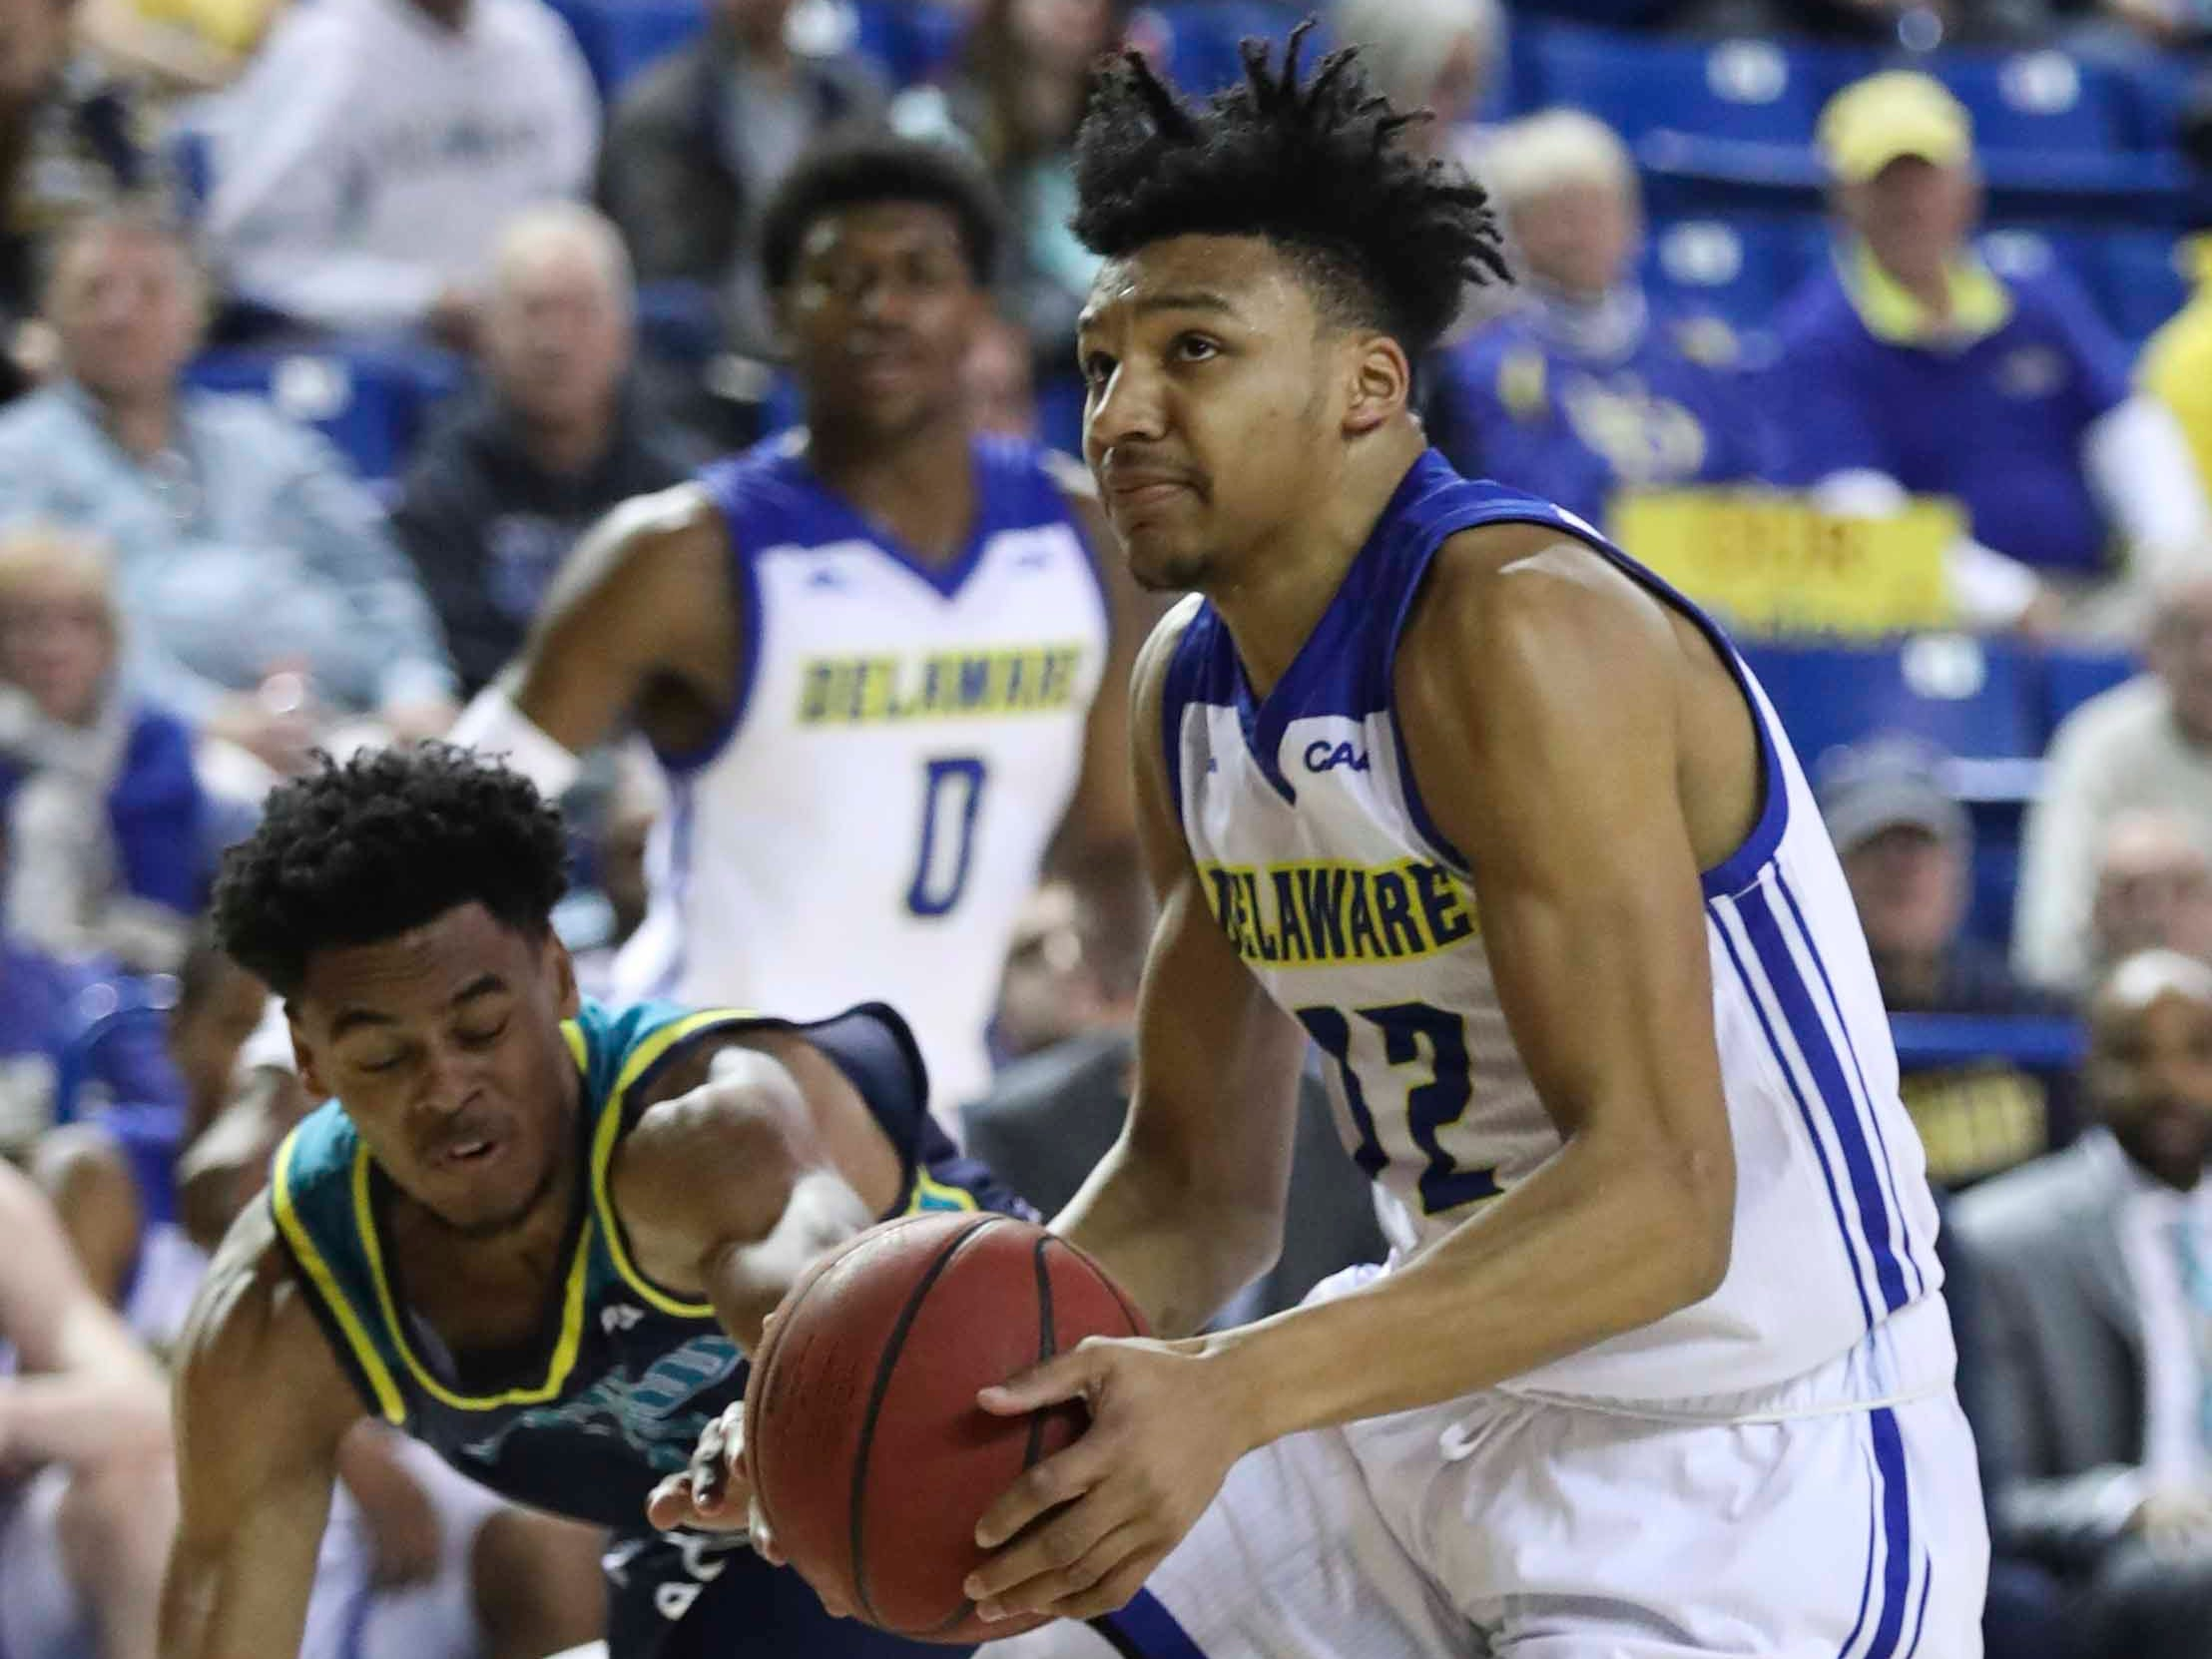 Delaware's Ithiel Horton (12) nearly loses the ball but instead ends up scoring ahead of UNC-Wilmington's Devontae Cacok in the second half of Delaware's 70-66 win at the Bob Carpenter Center Saturday.